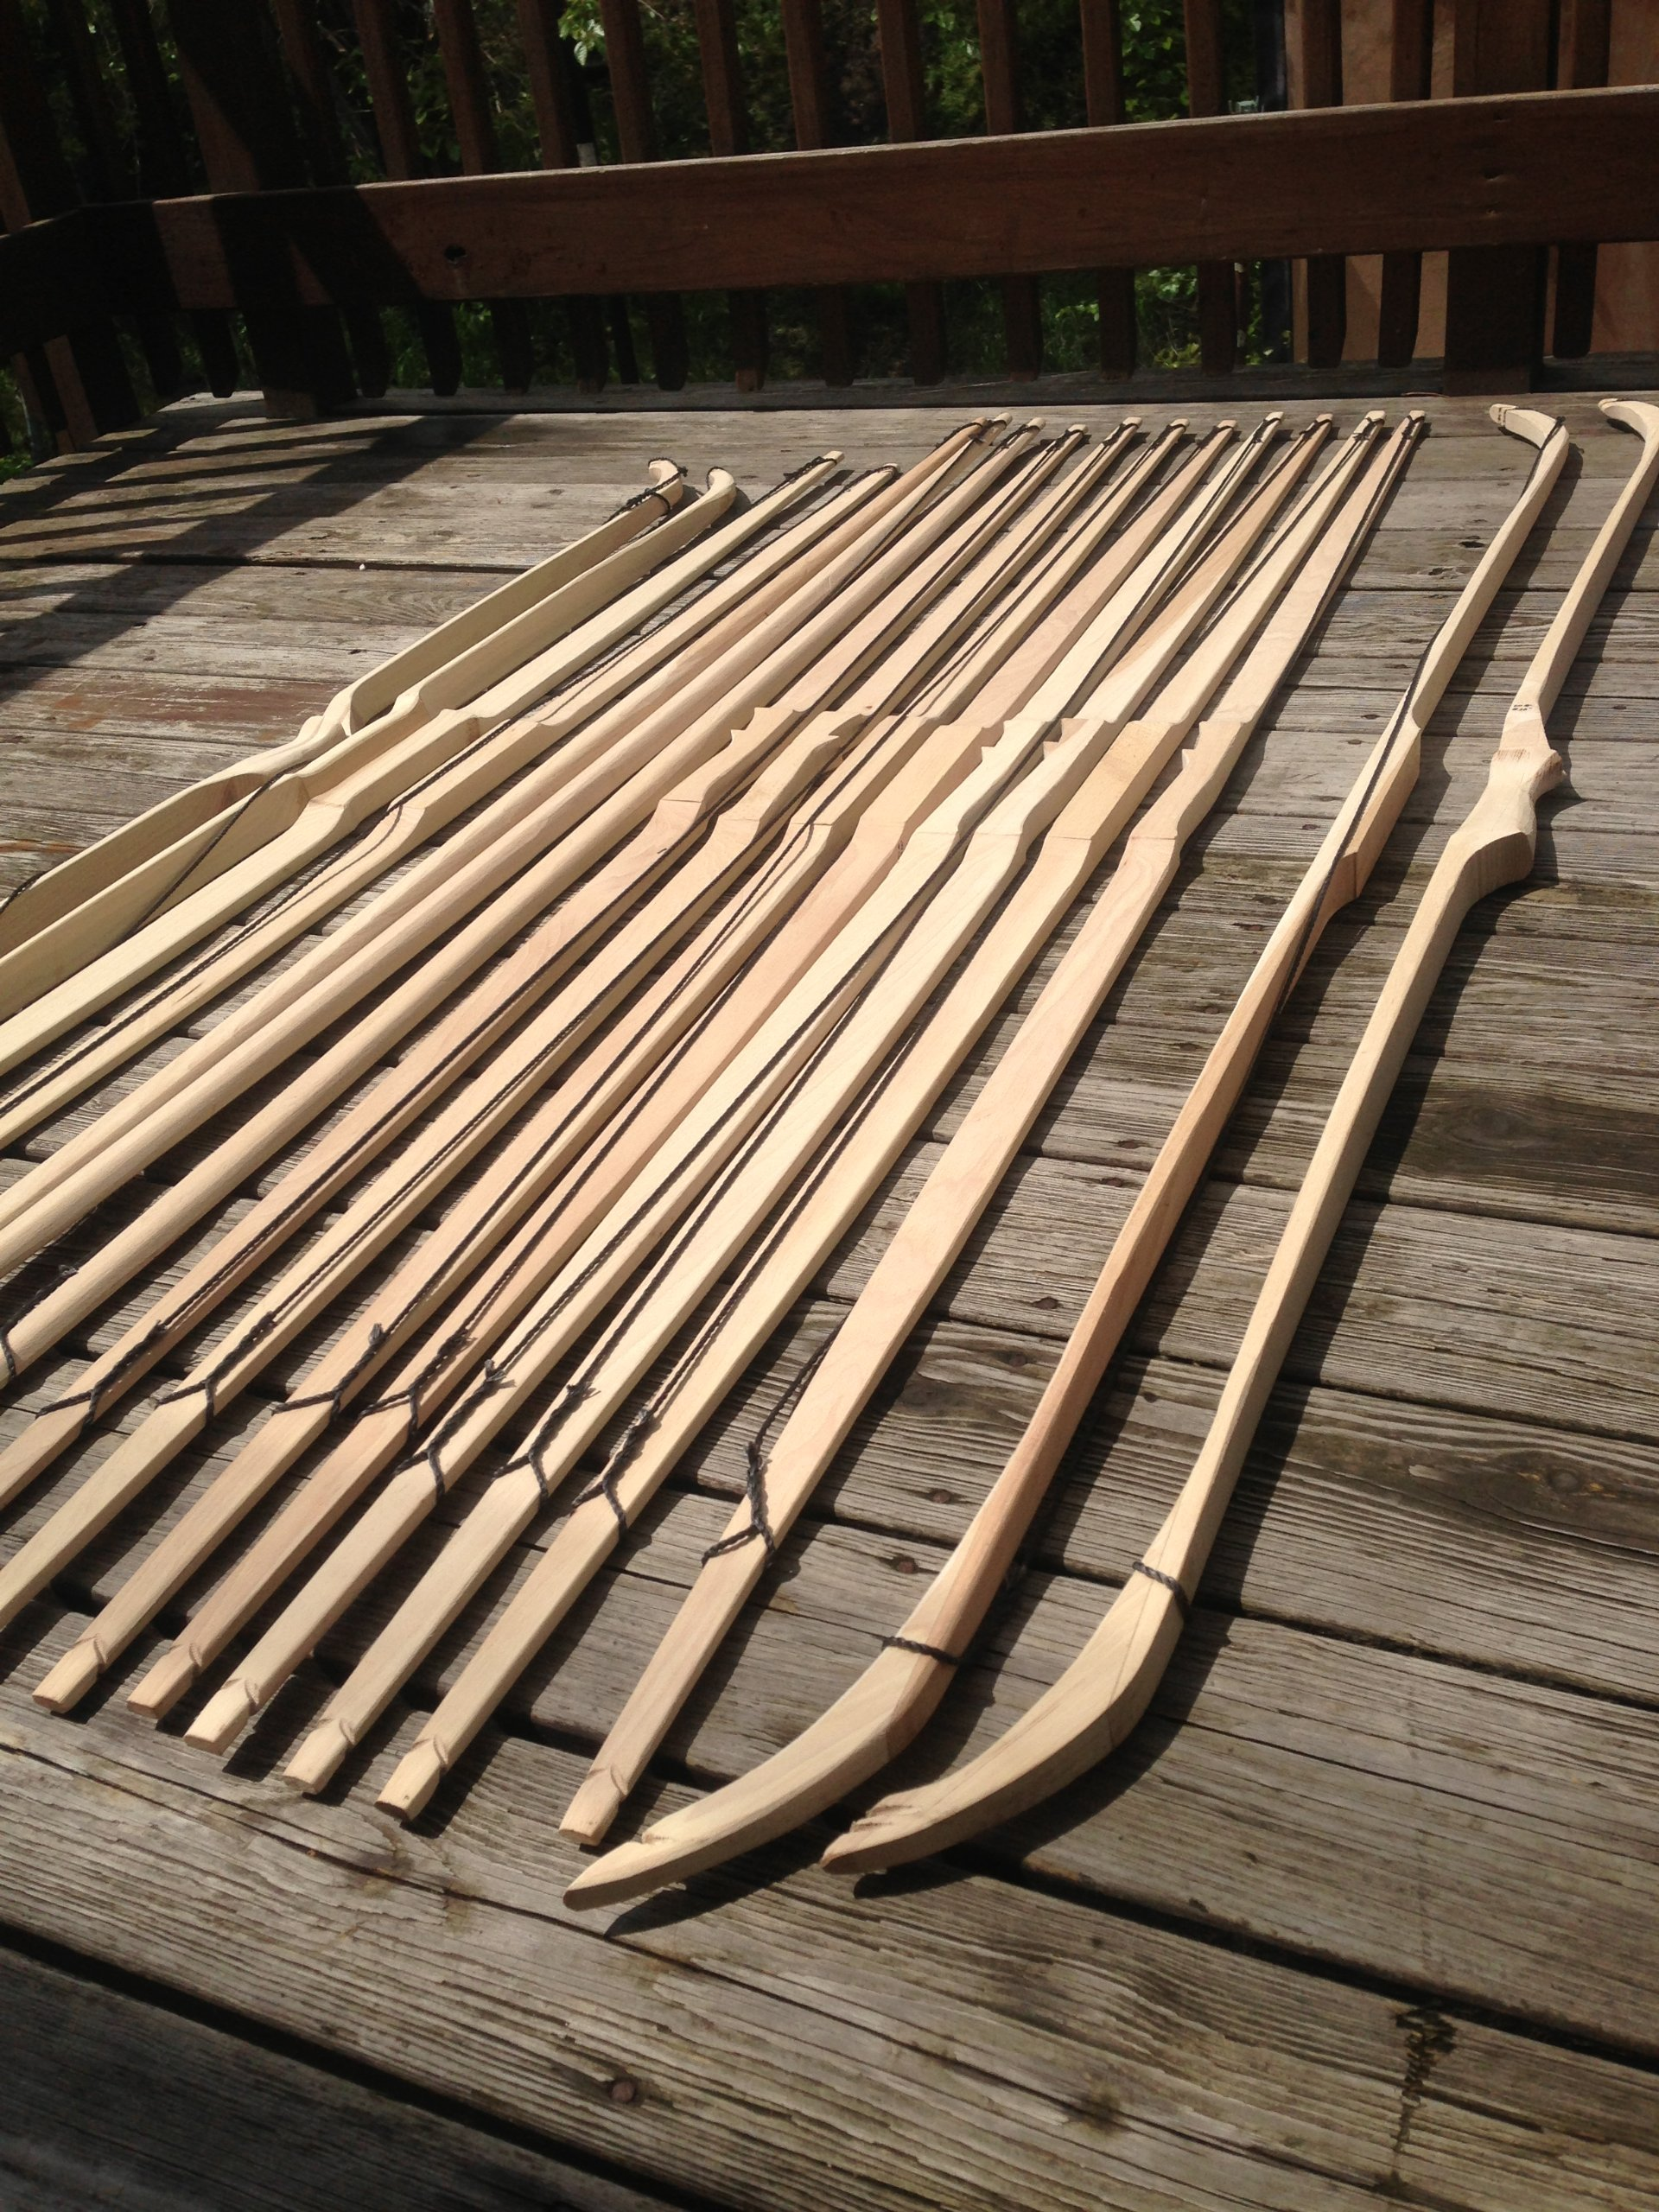 50lb 71'' You-Finish Traditional Hickory Longbow! Competition or Hunting Bow! Wood Archery! by RingingRocksArchery.com (Image #5)